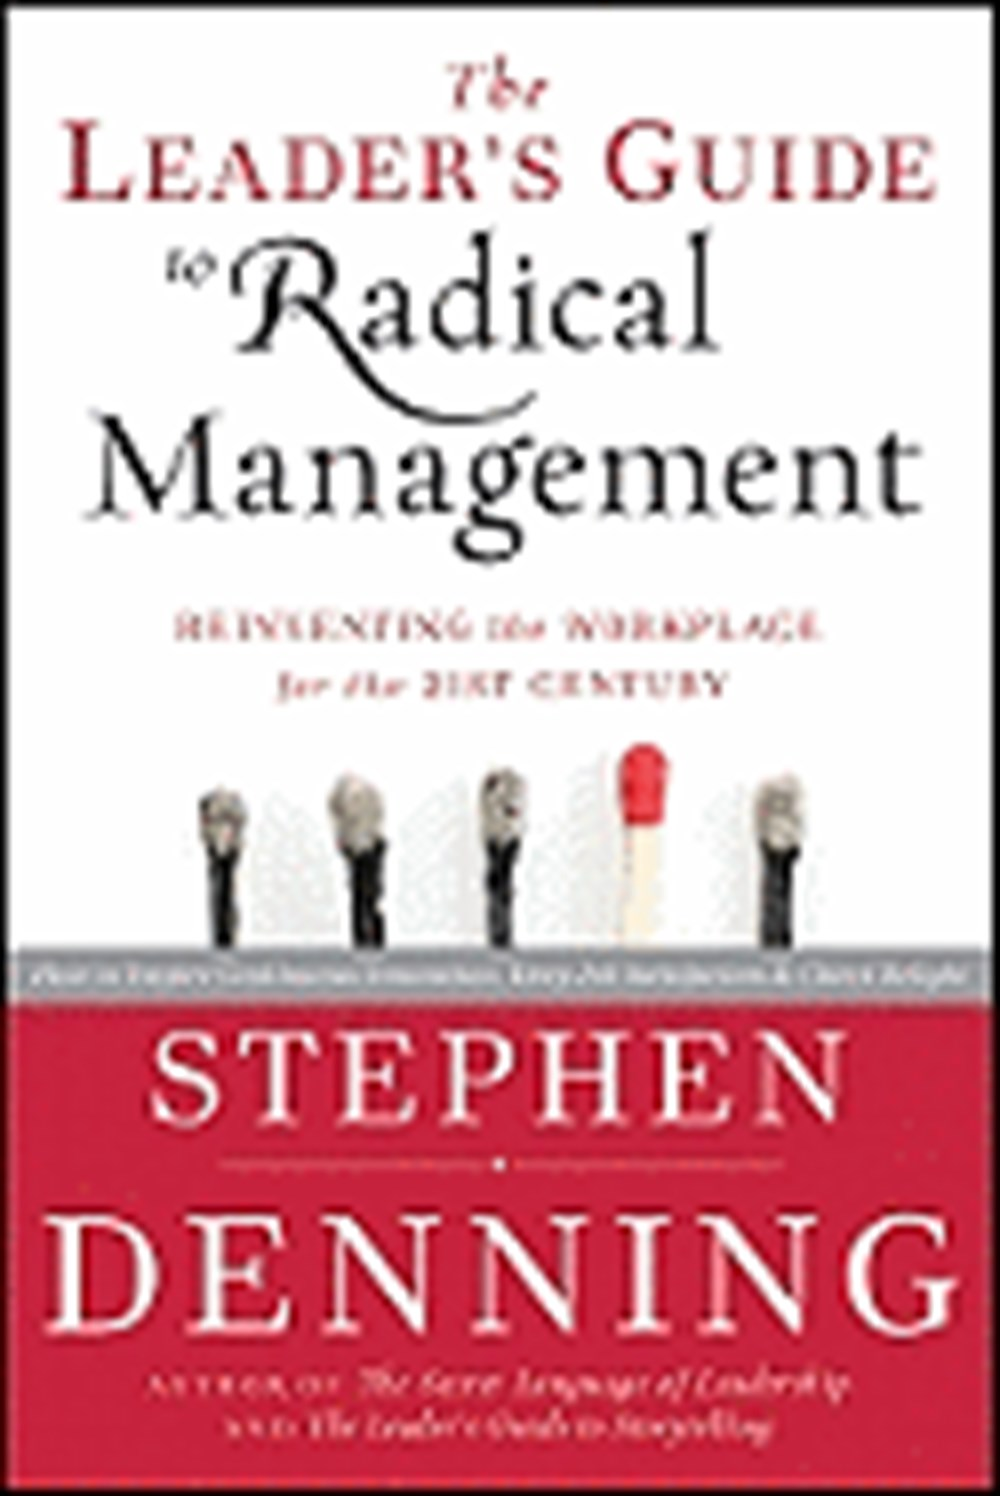 Leader's Guide to Radical Management Reinventing the Workplace for the 21st Century